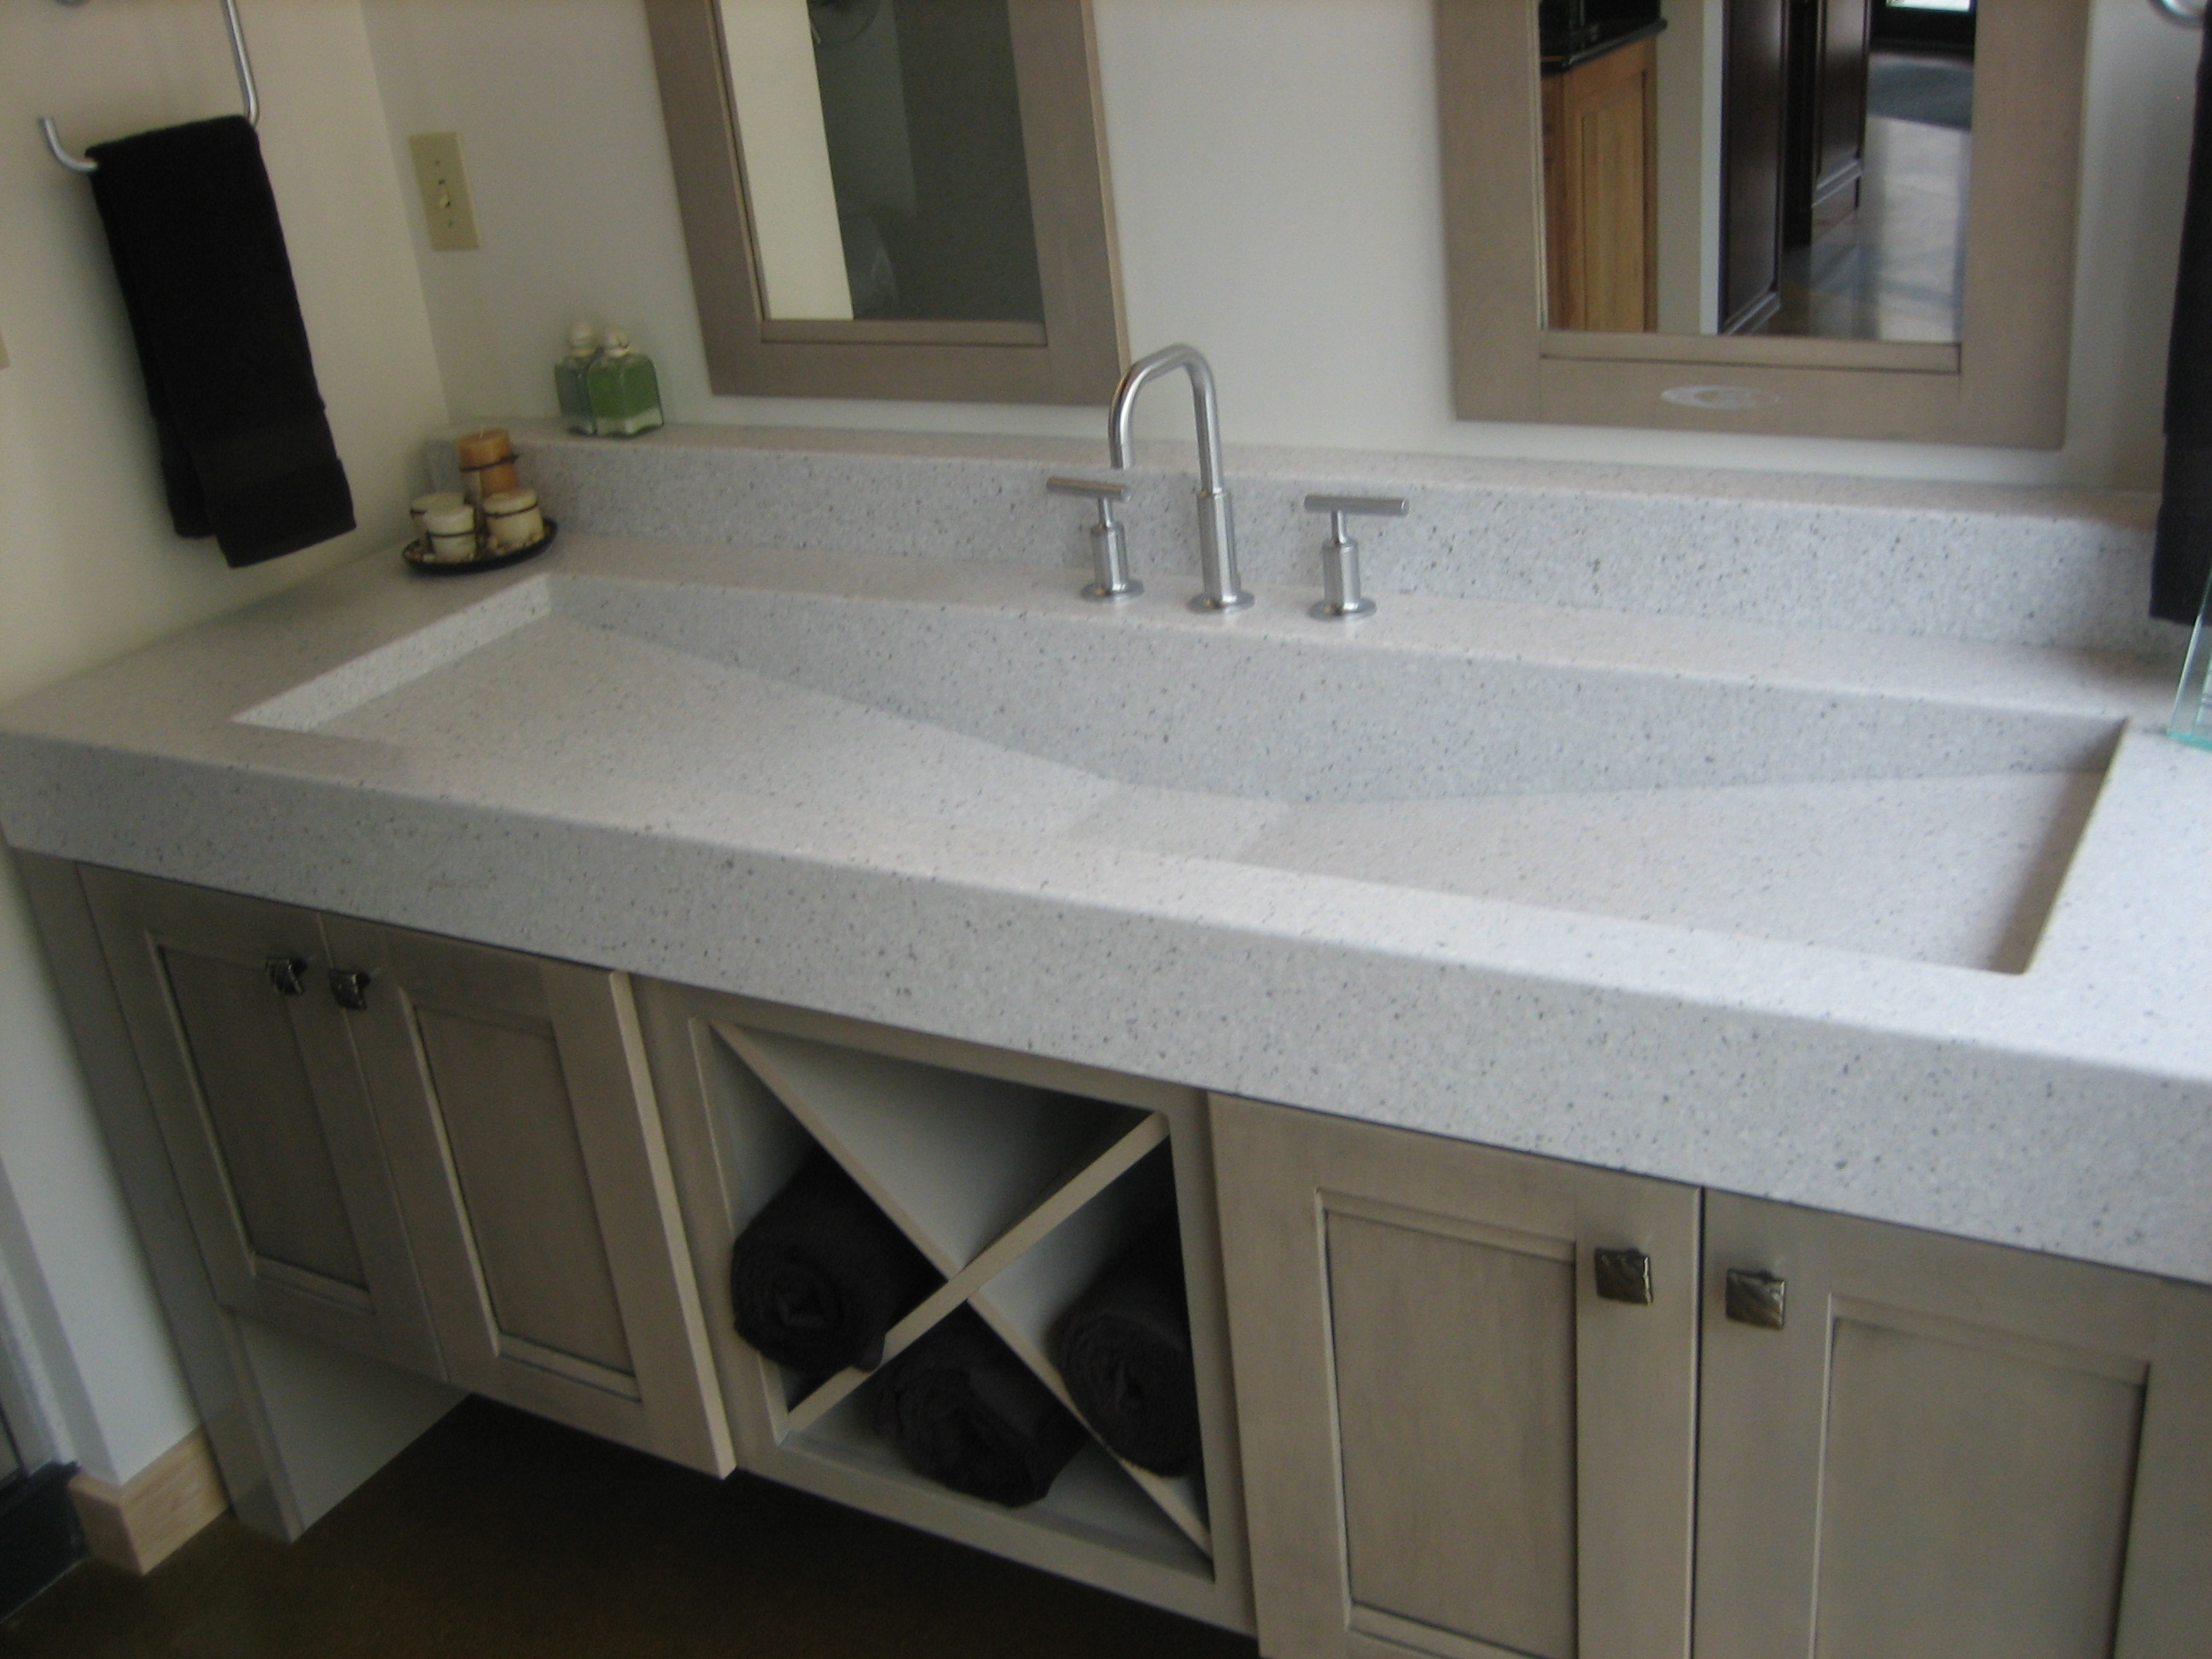 Ideas, one kitchen sink with two faucets one kitchen sink with two faucets bathroom fabulous trough sink for bathroom and kitchen 2592 x 1944  .